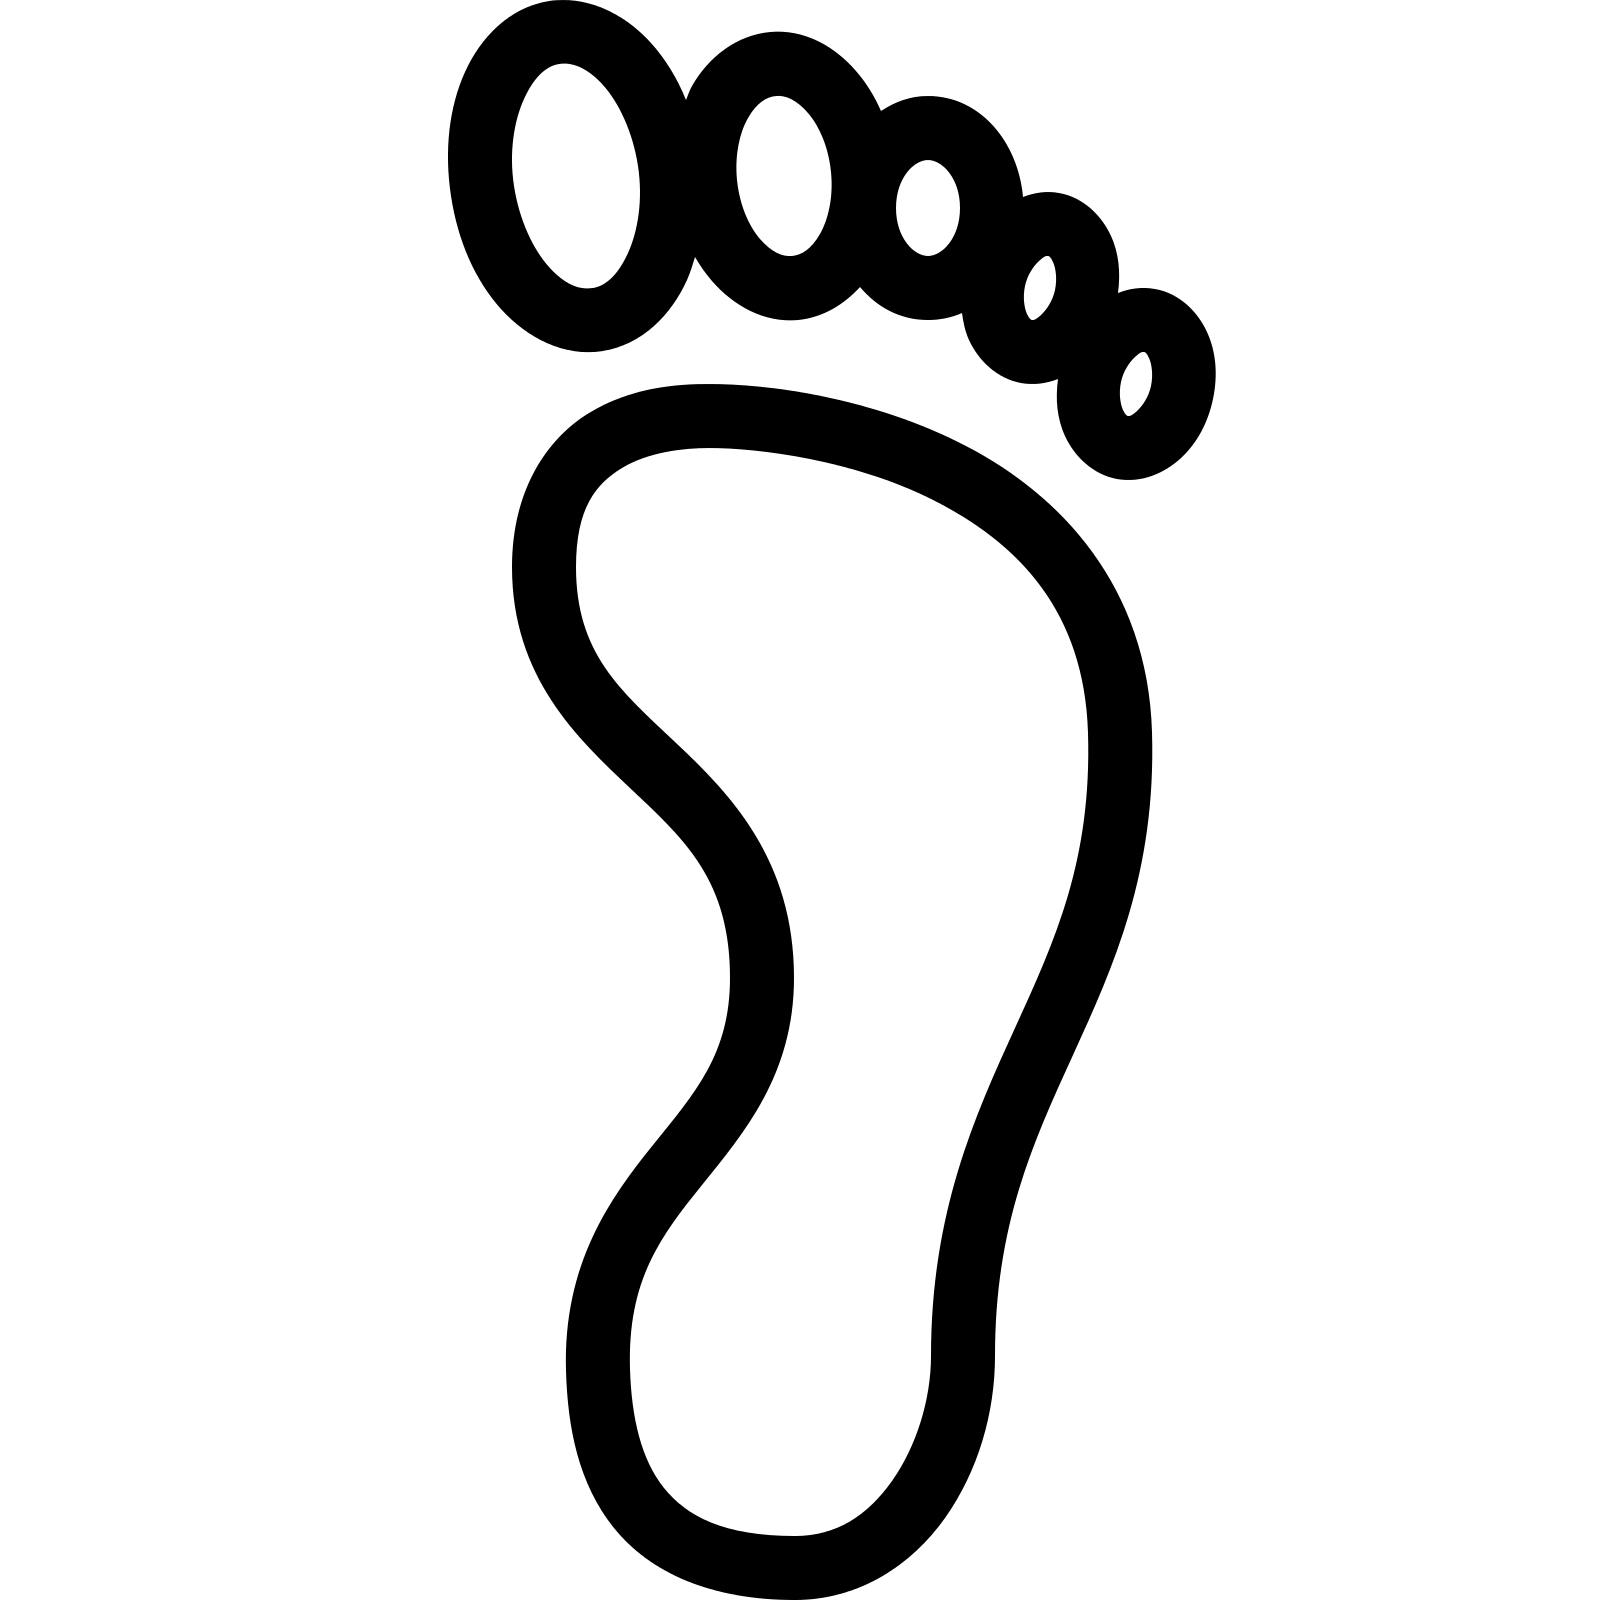 Footprint clipart right Bare PNG Download and right